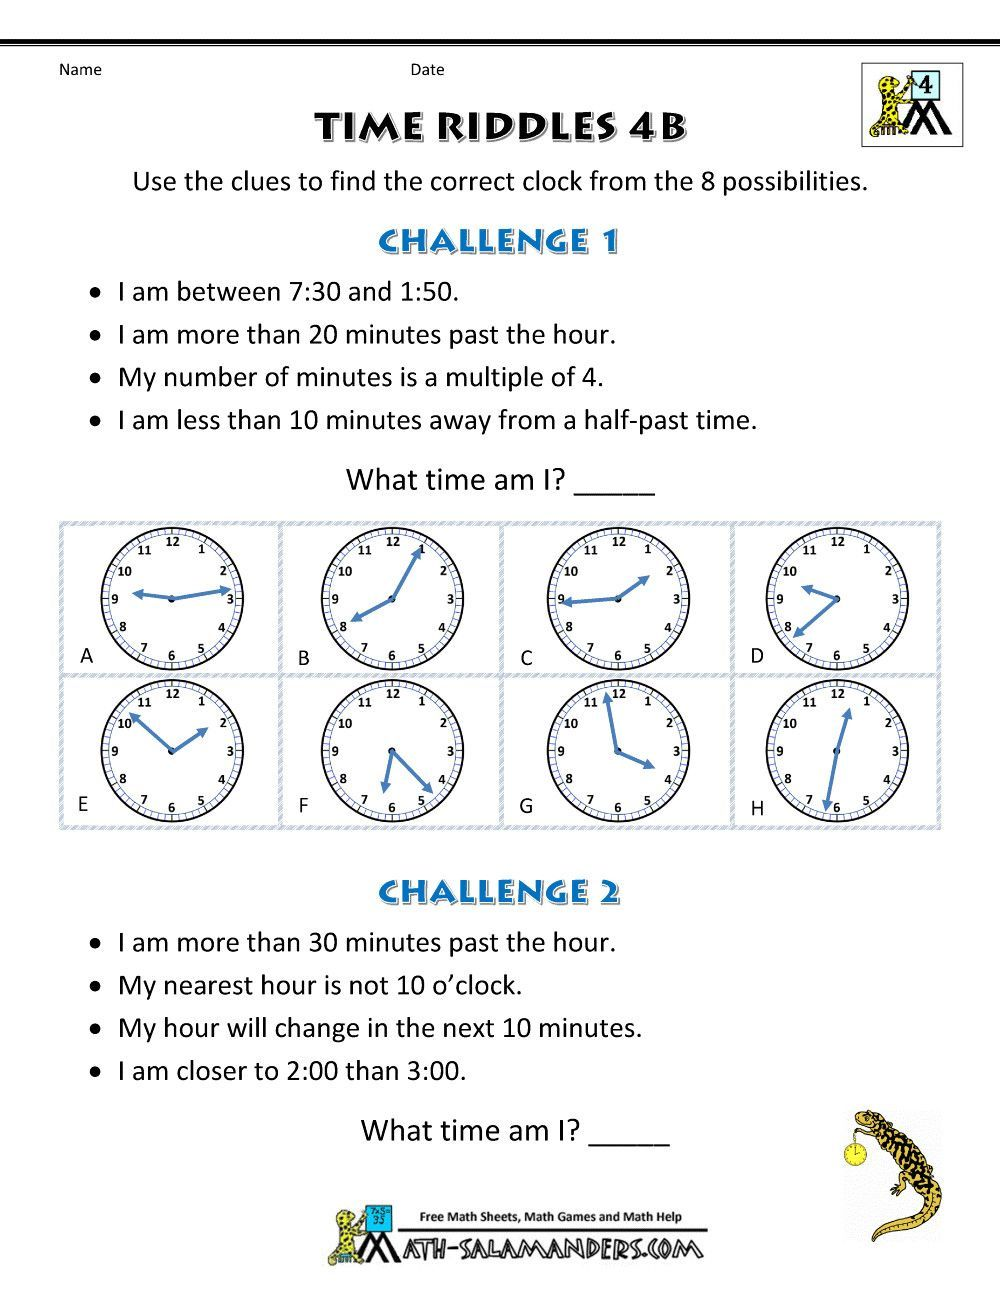 2 Free Elapsed Time Worksheets No Hands 001 Time Worksheet Time Riddles Harder Worksheets Worksheets In 2020 Time Worksheets Telling Time Worksheets Math Worksheets